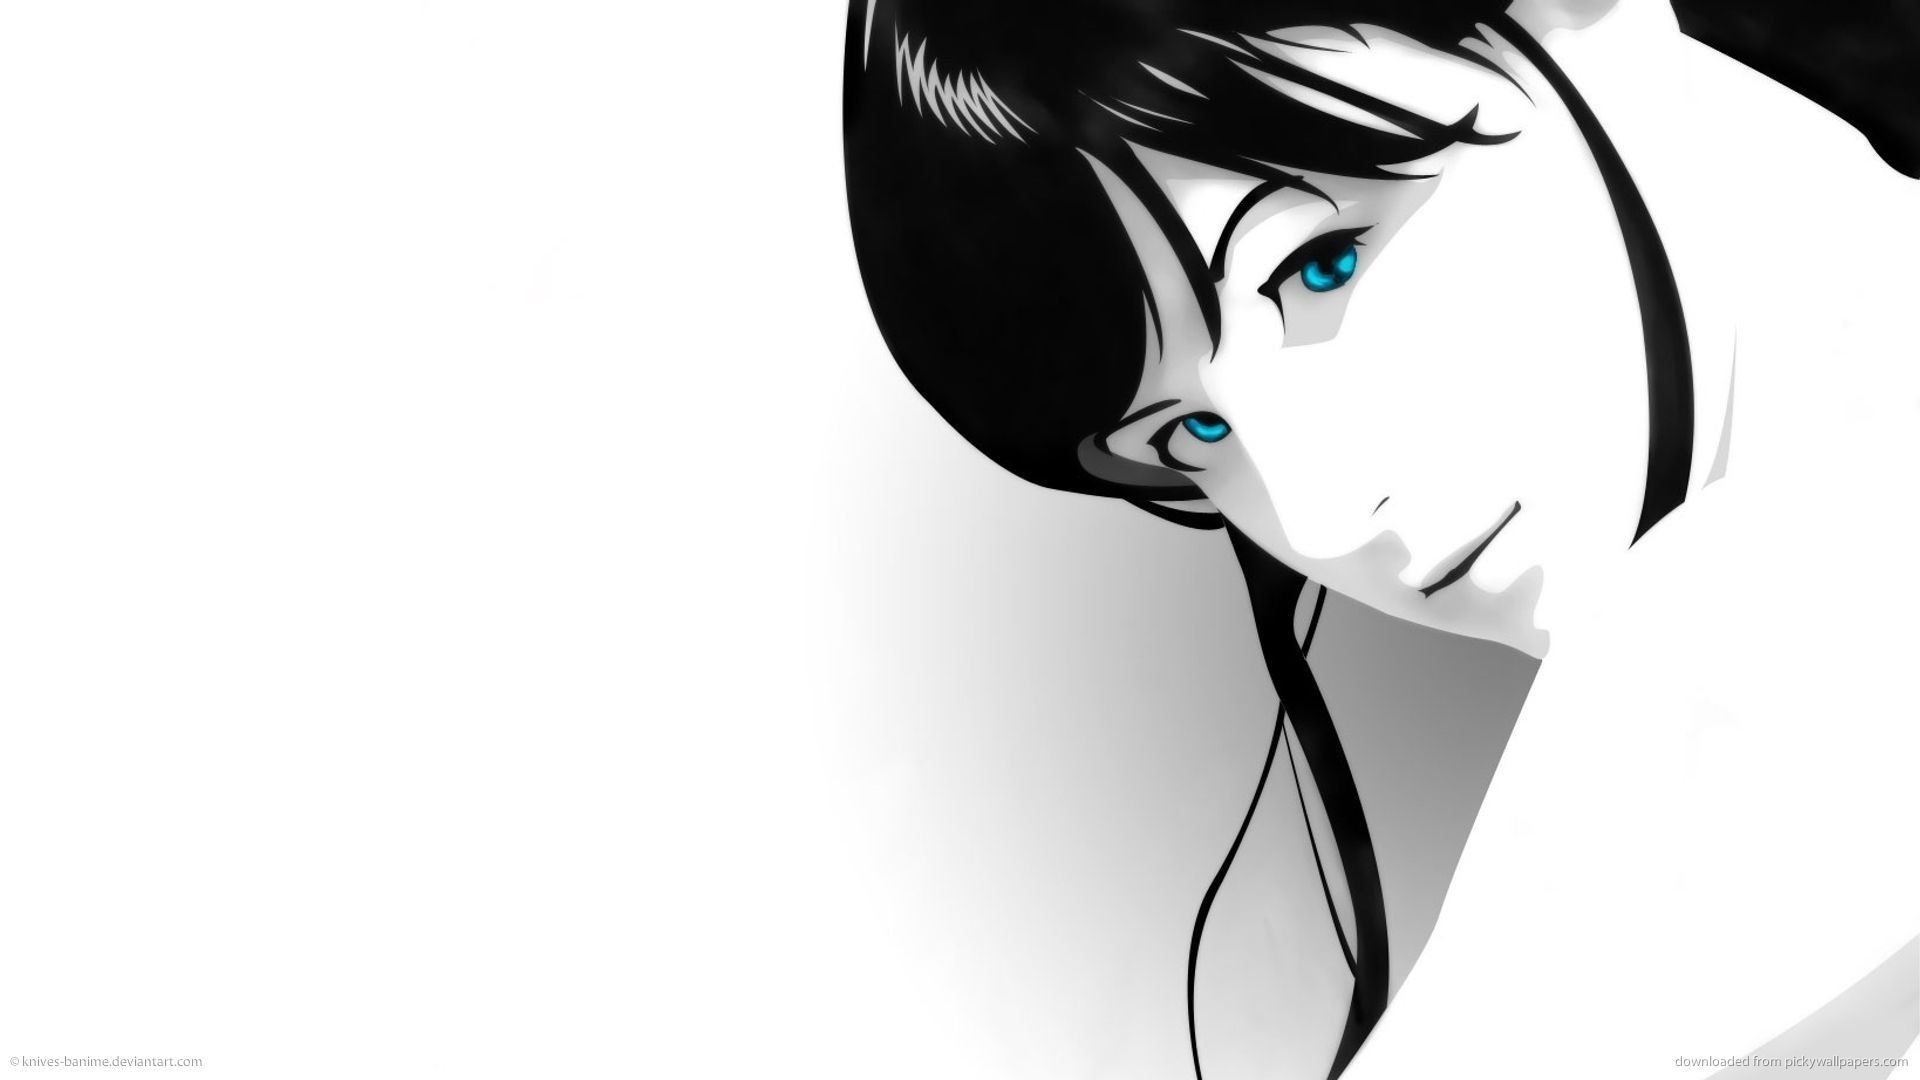 Anime Black And White wallpaper photo hd